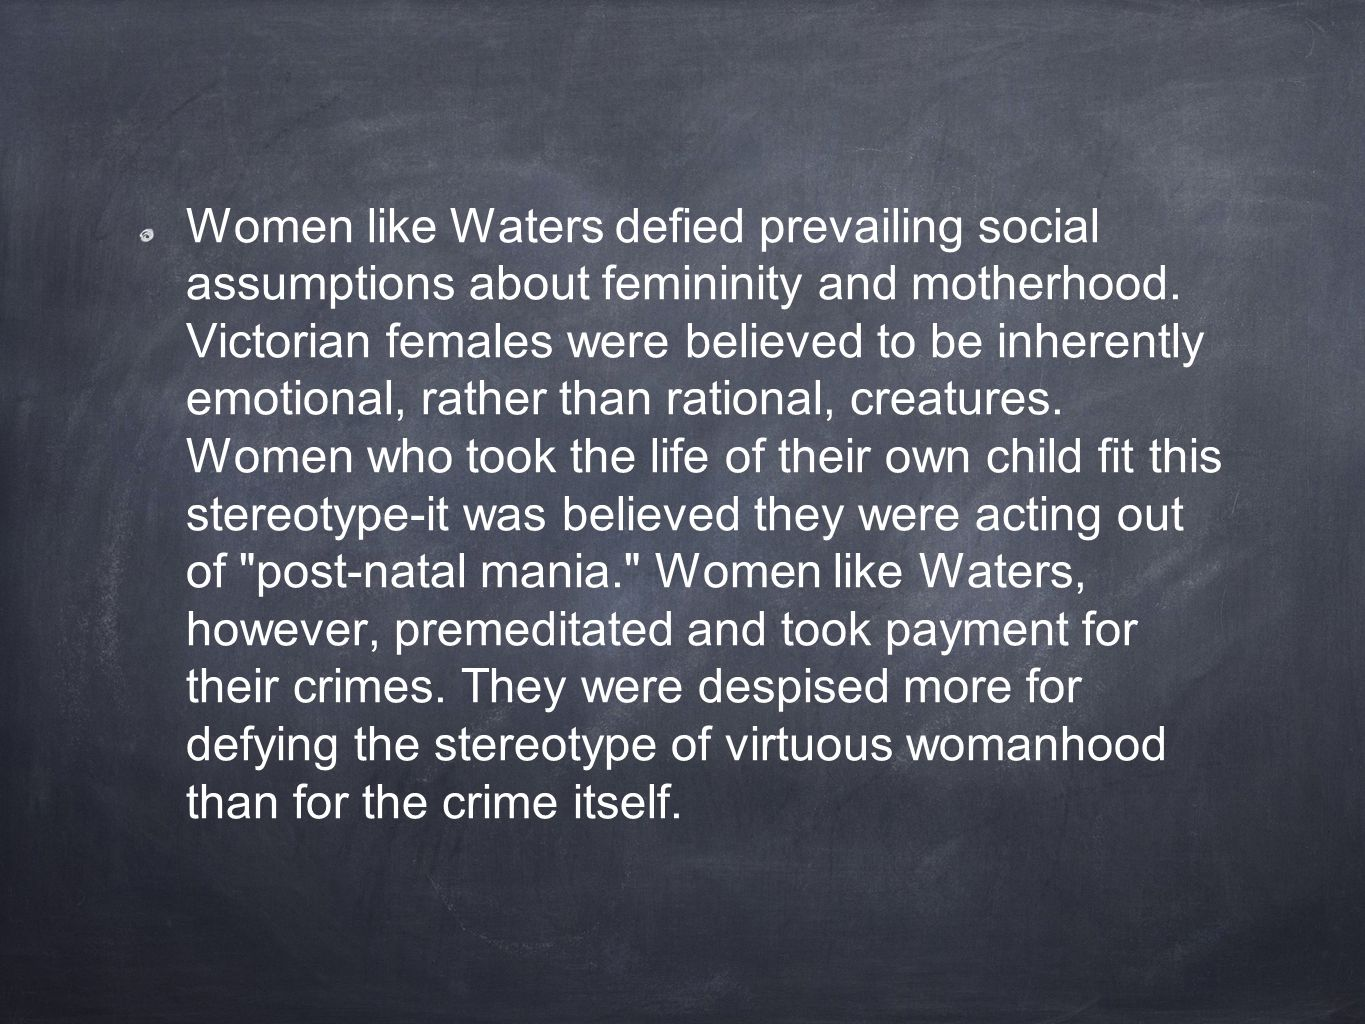 Women like Waters defied prevailing social assumptions about femininity and motherhood.